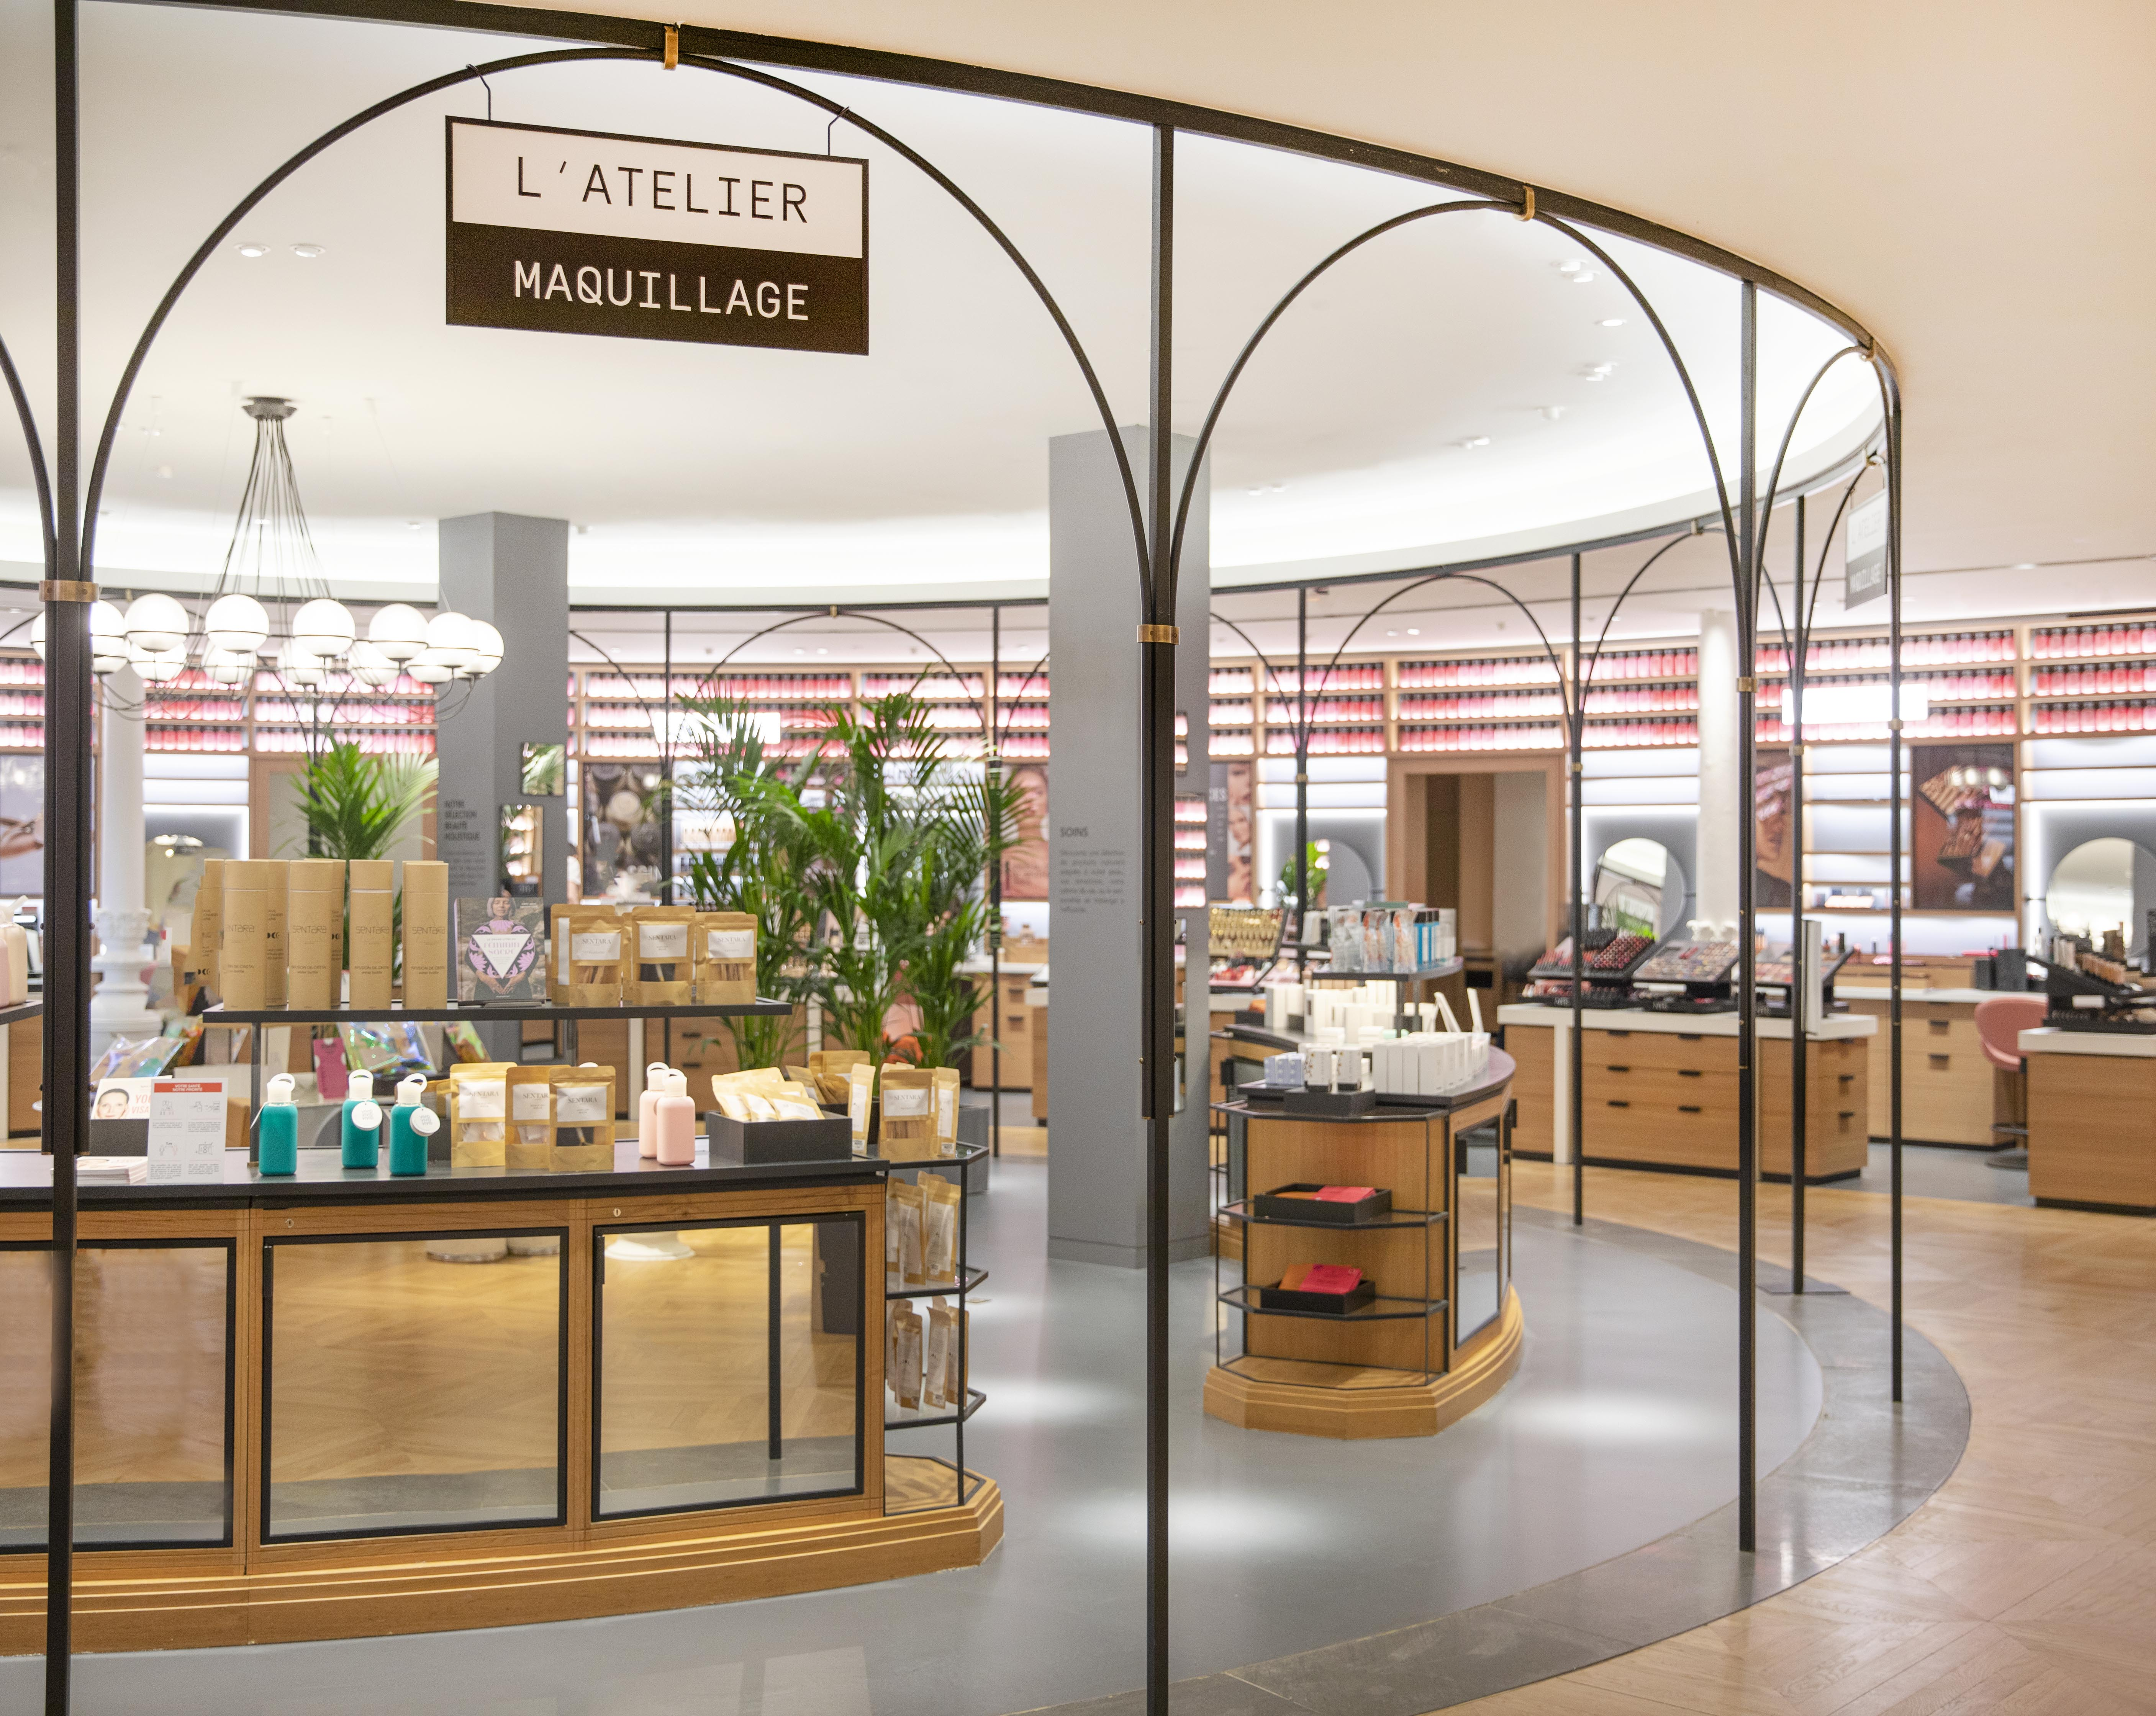 L'Atelier Maquillage at Le Bon Marché